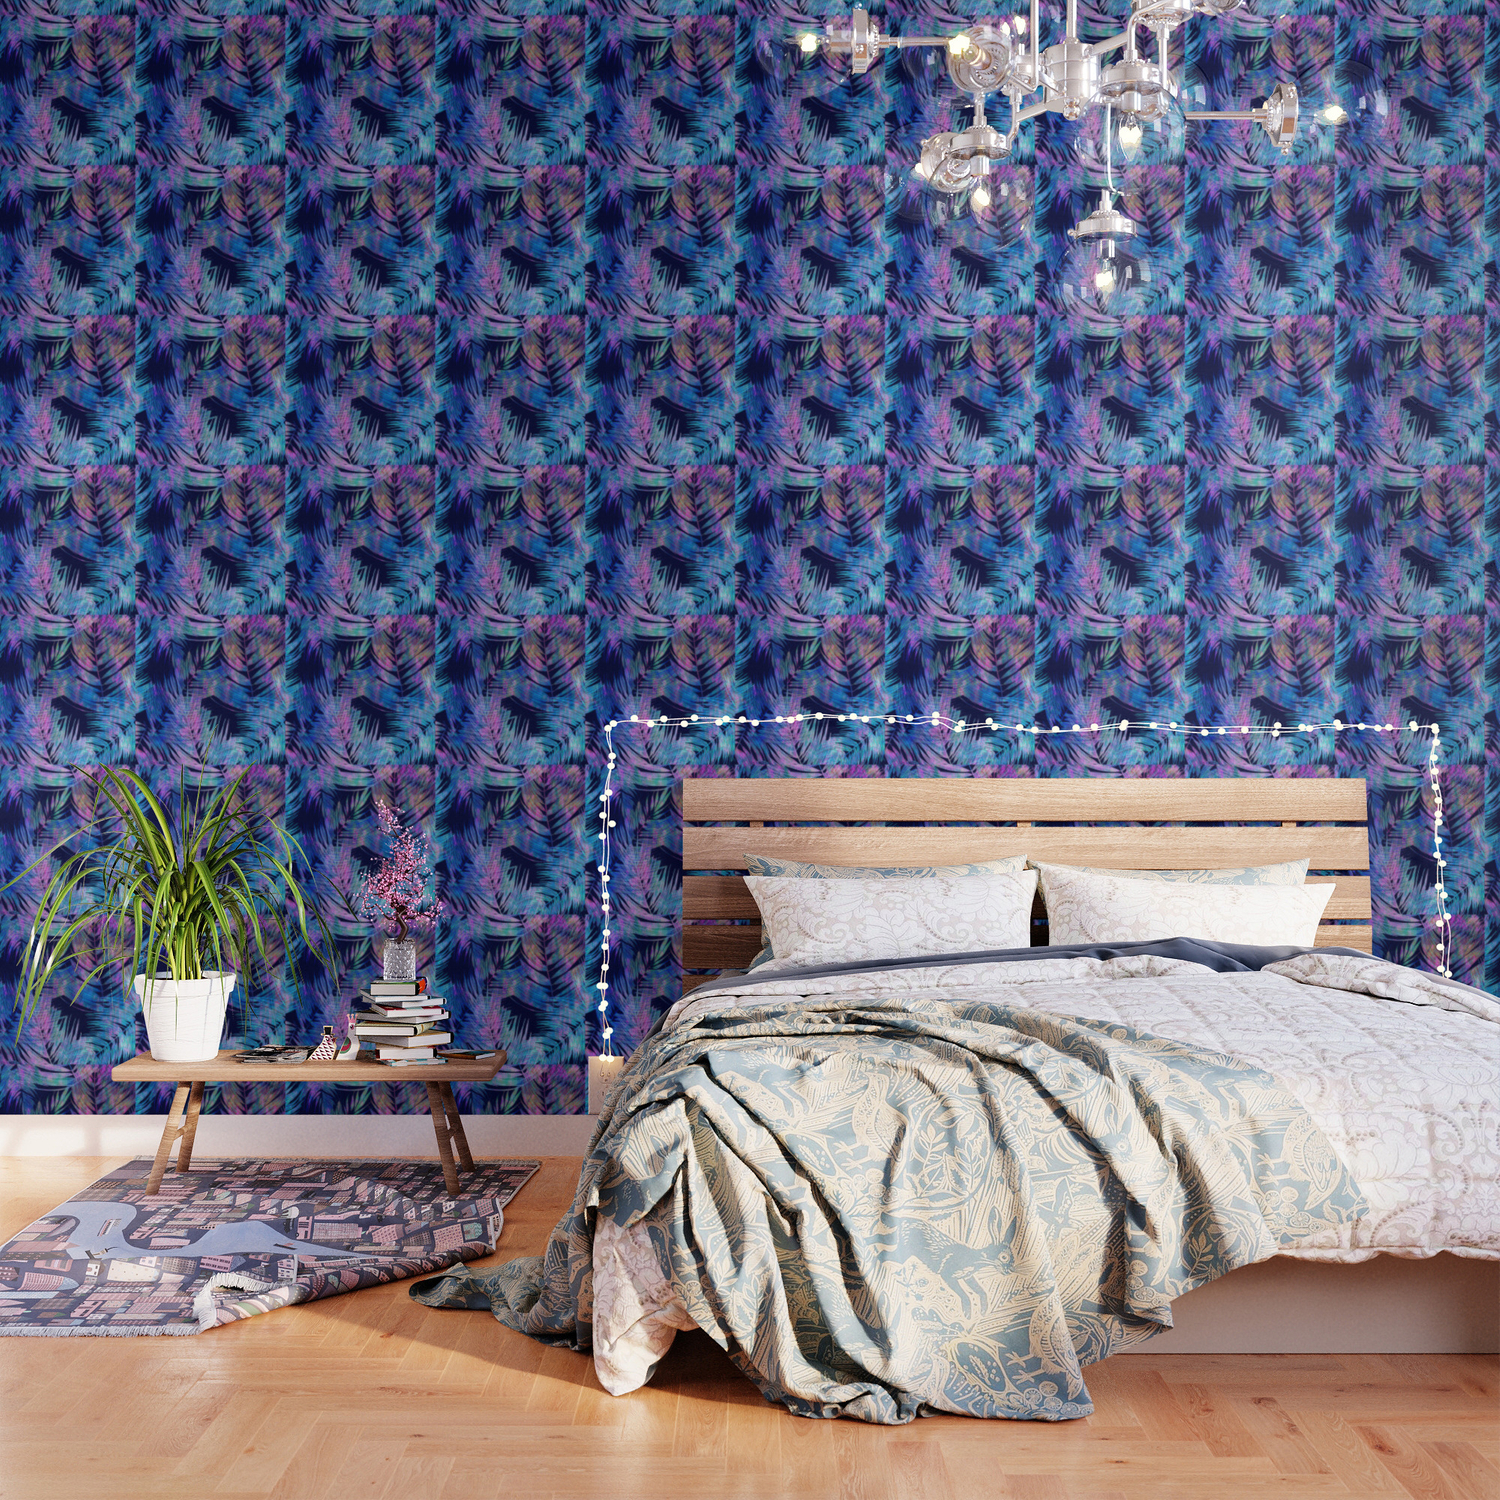 Waikiki Tropic Blue Wallpaper by schatzibrown Society6 1500x1500